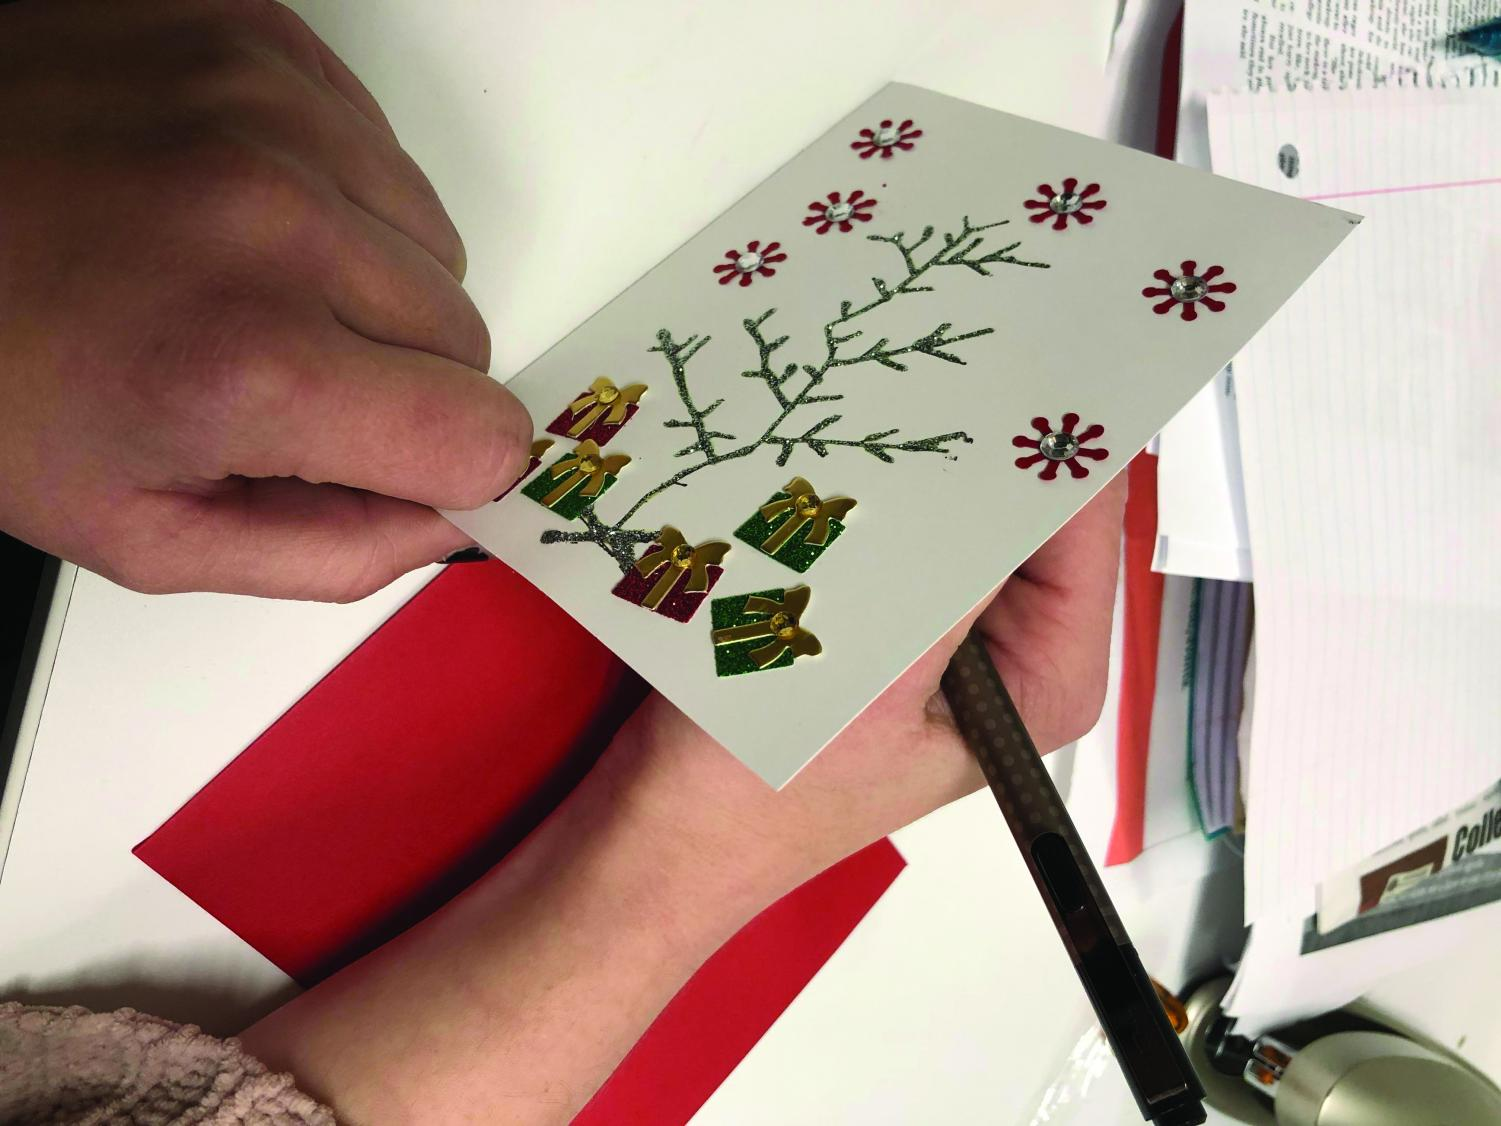 Making cards is a low-cost and easy gift idea.